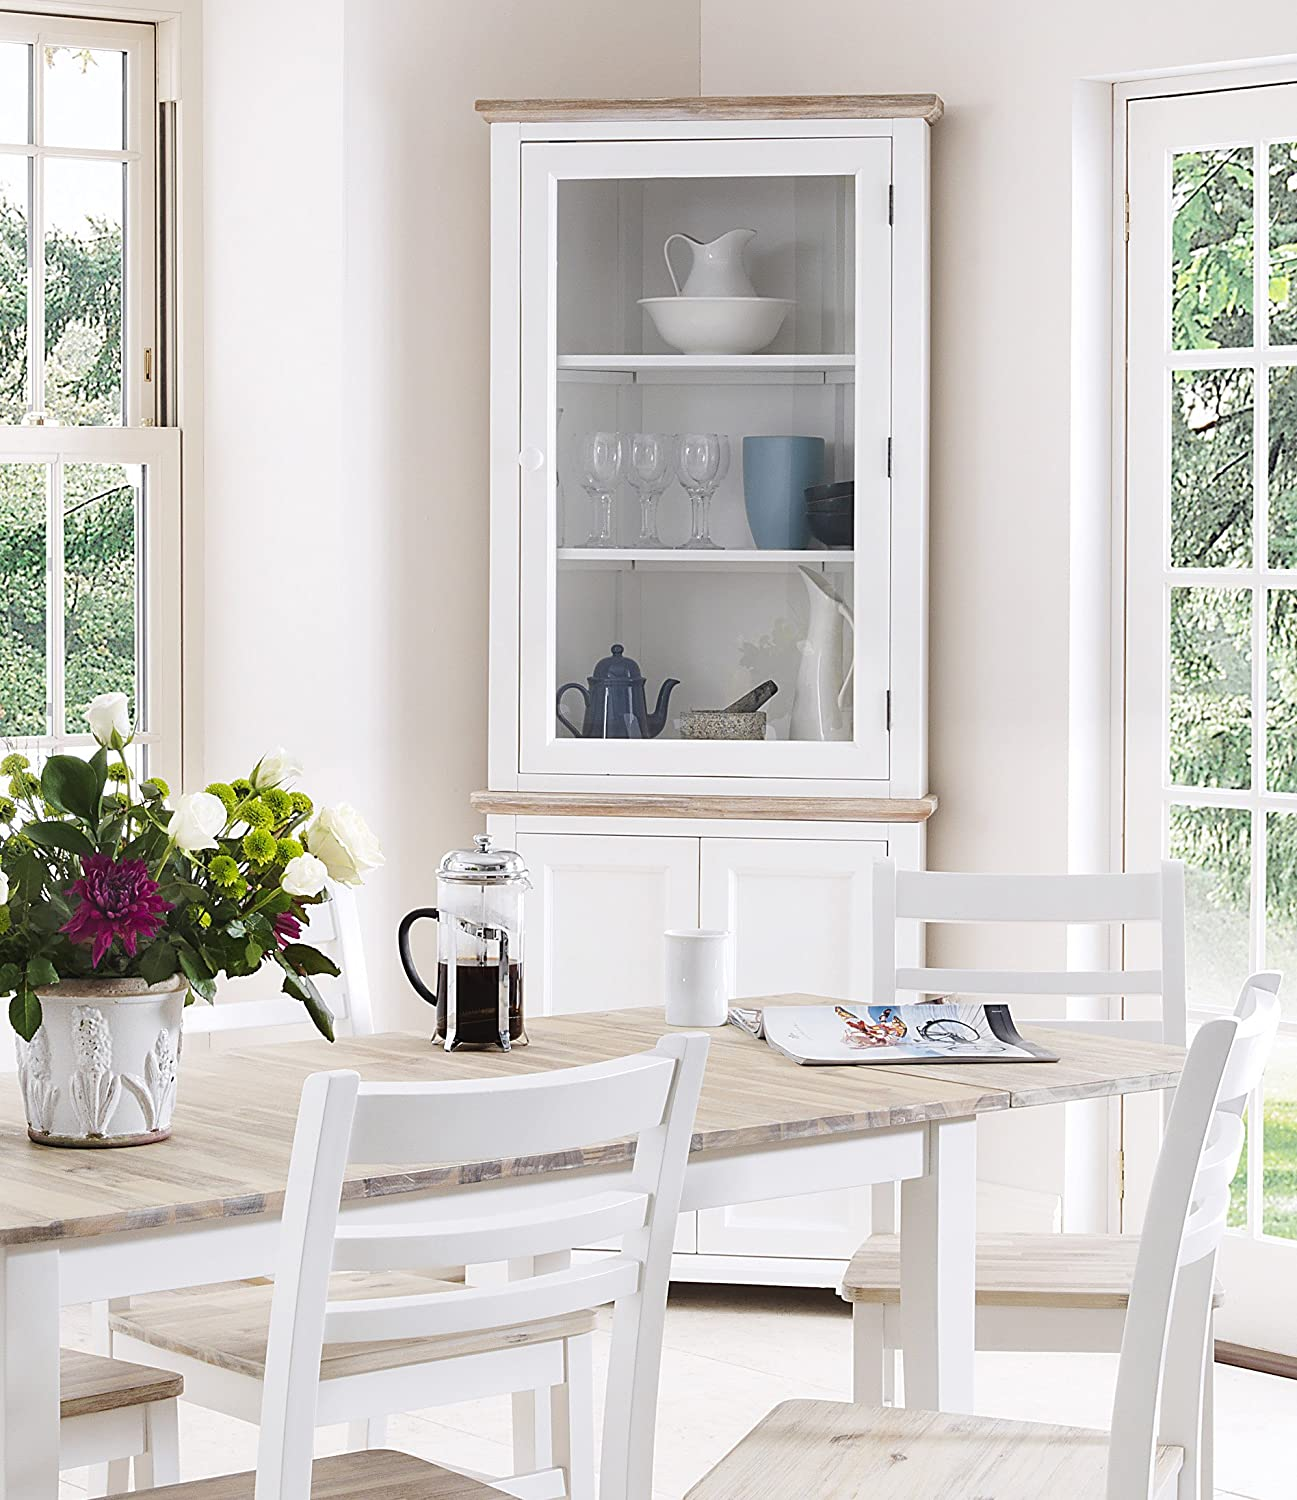 Florence Corner Display Cabinet White Glass Dresser With Bottom Cupboard Shelf STURDY